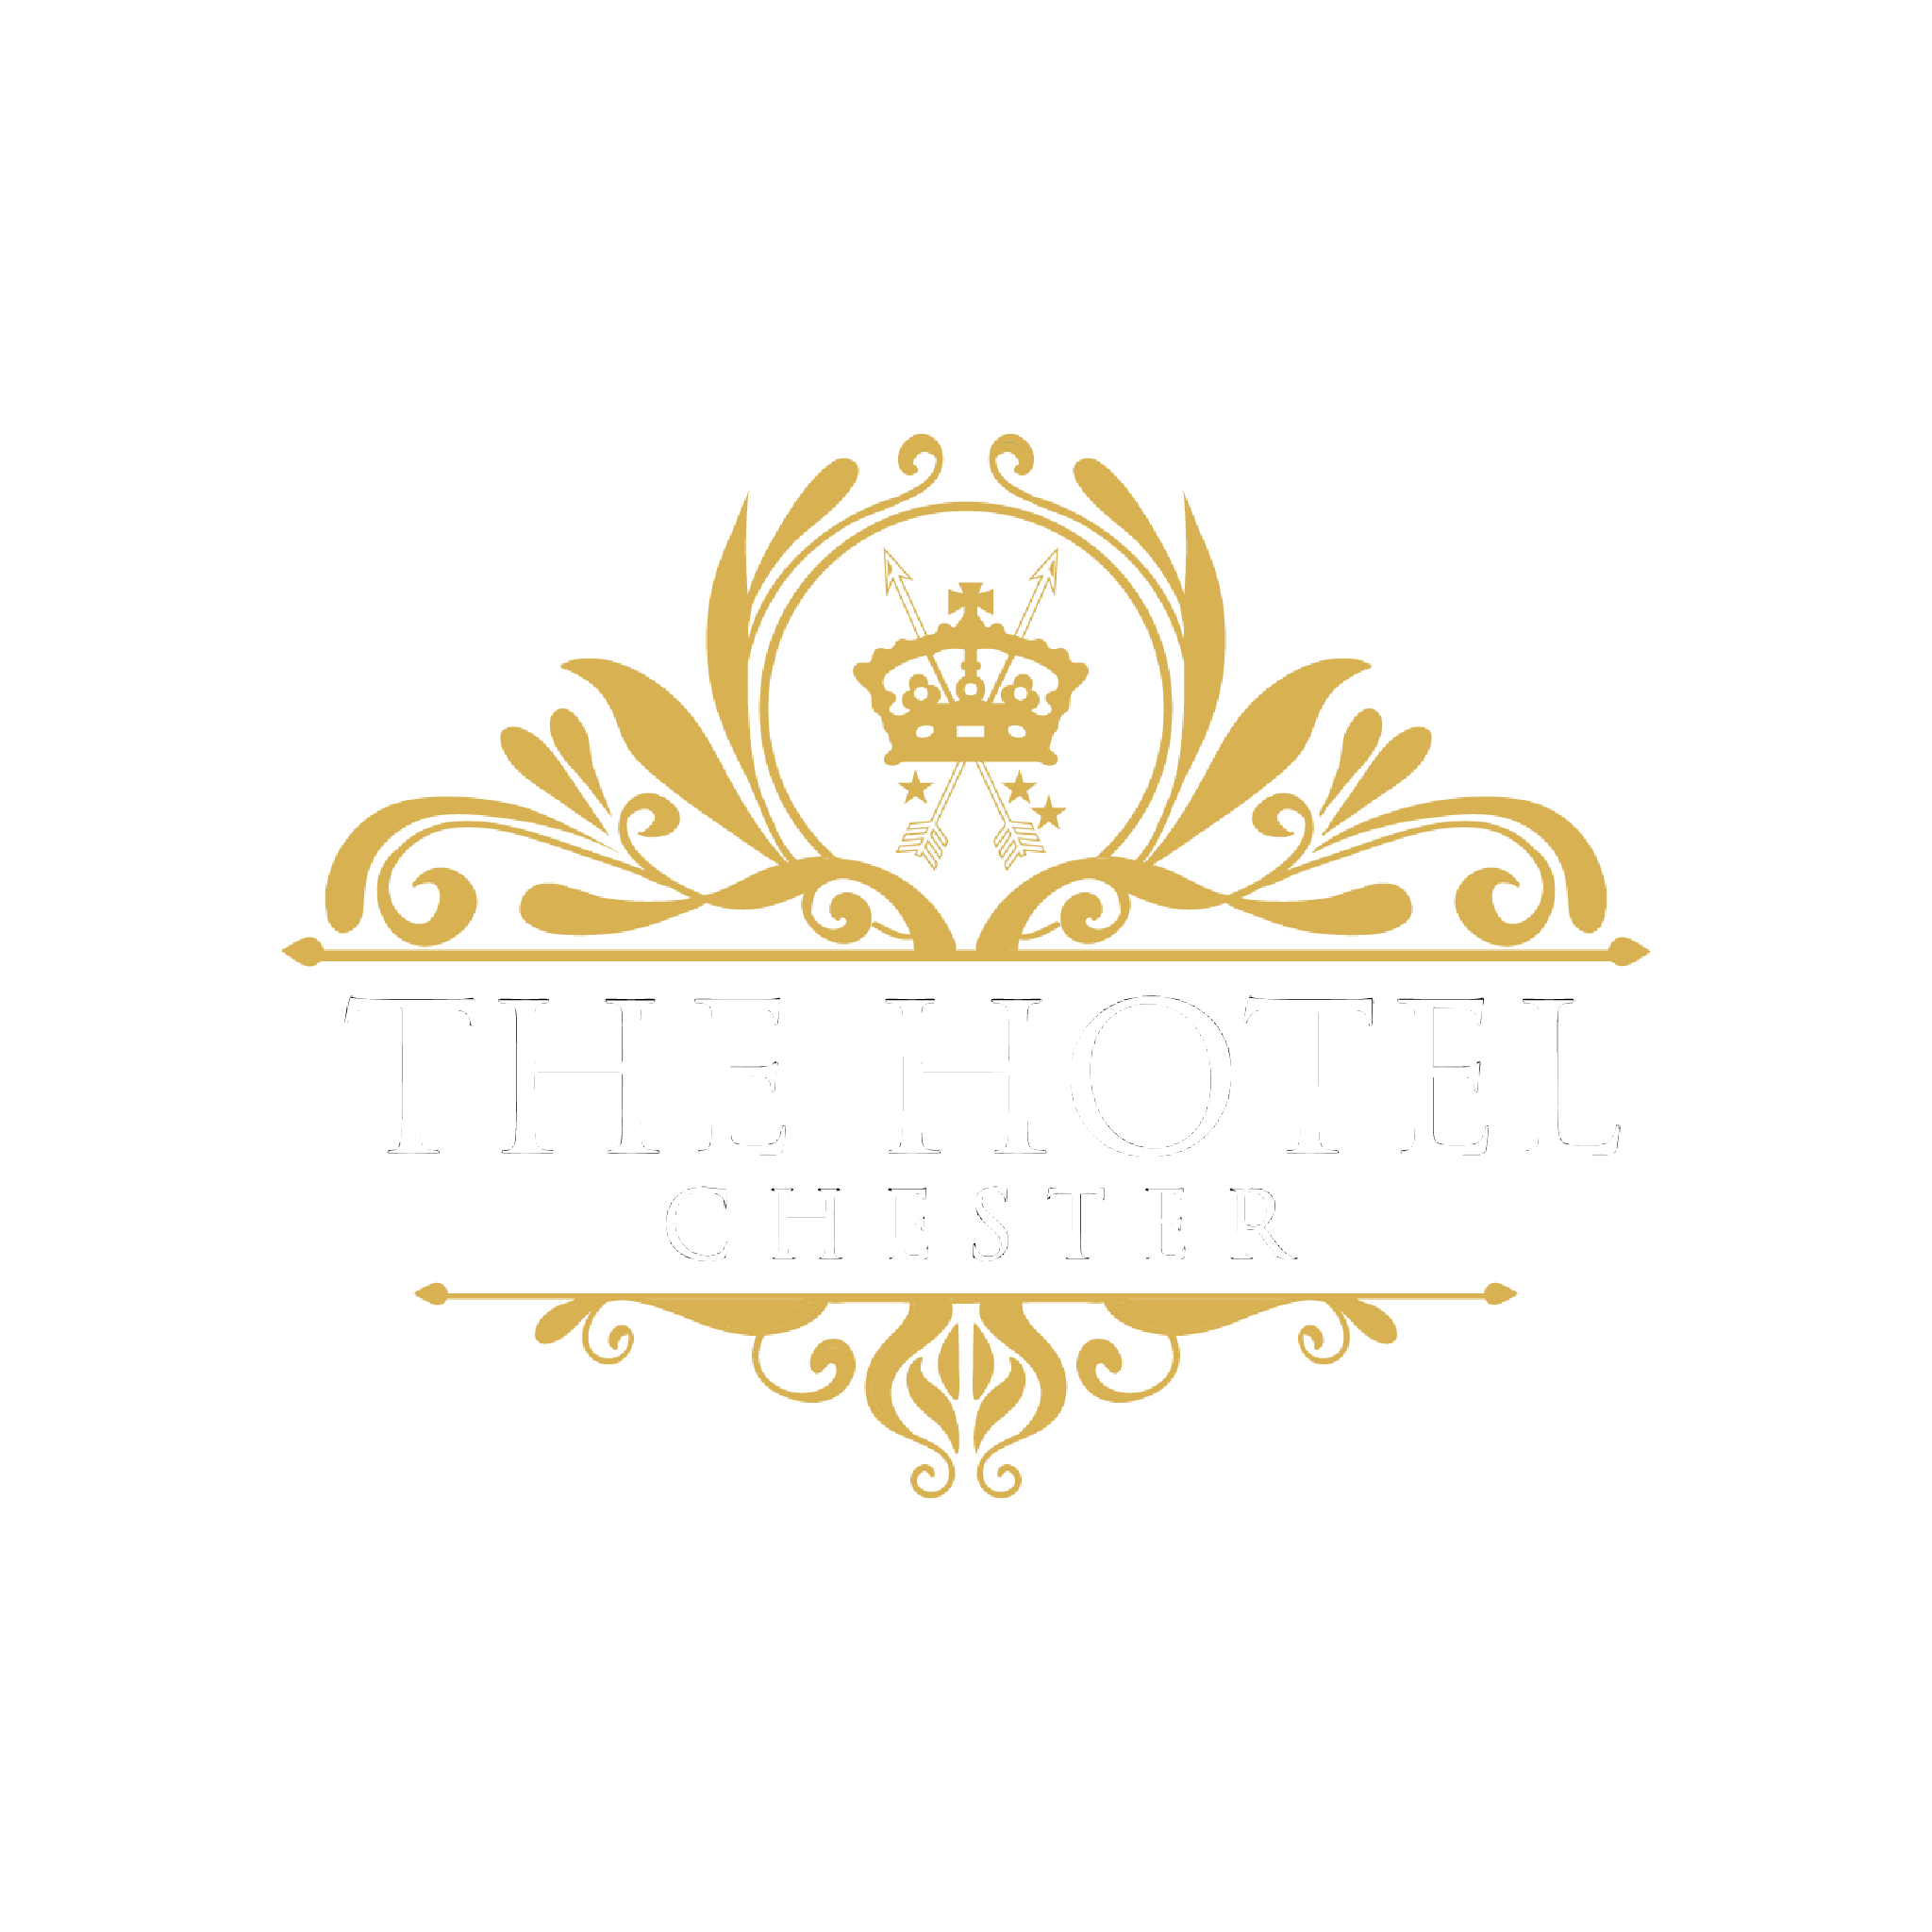 The Hotel Chester